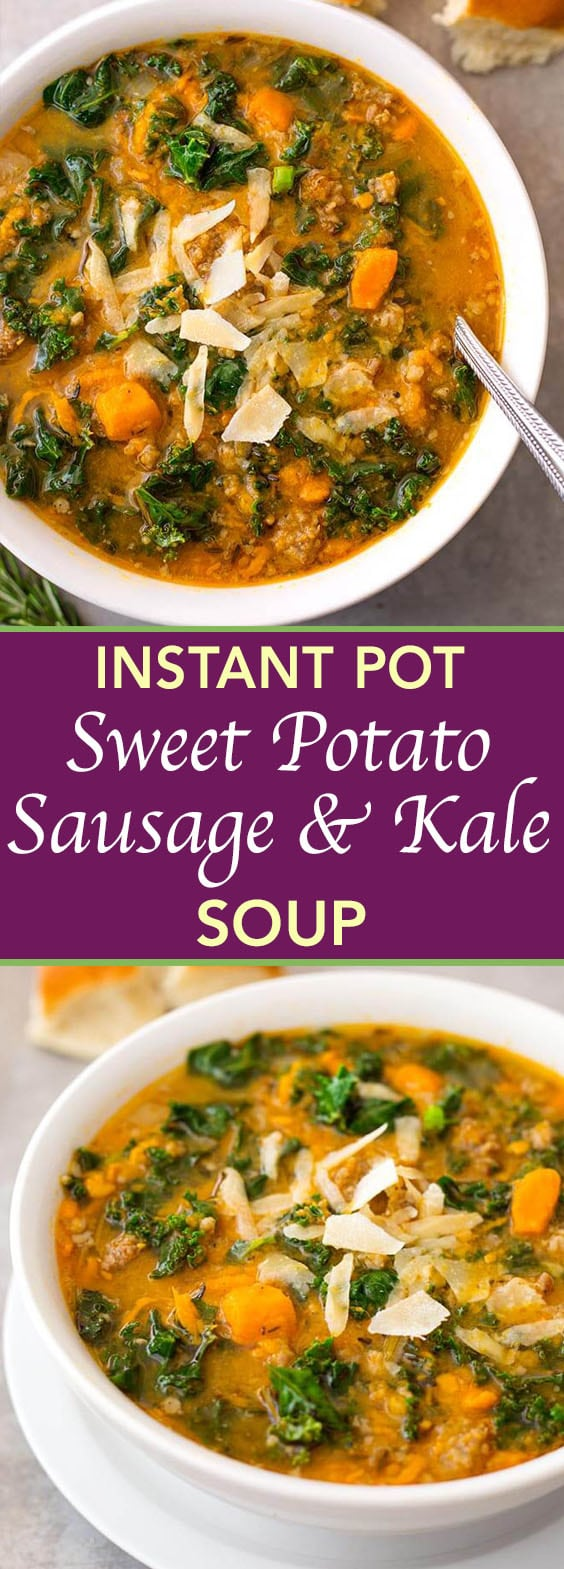 Instant Pot Sweet Potato Sausage and Kale Soup is a hearty, but not heavy soup with a ton of flavor. It is easy to make, and so very delicious, and even healthy! simplyhappyfoodie.com #instantpotrecipes #instantpotsweetpotatosausagekalesoup #instantpotsoup #pressurecookersoup